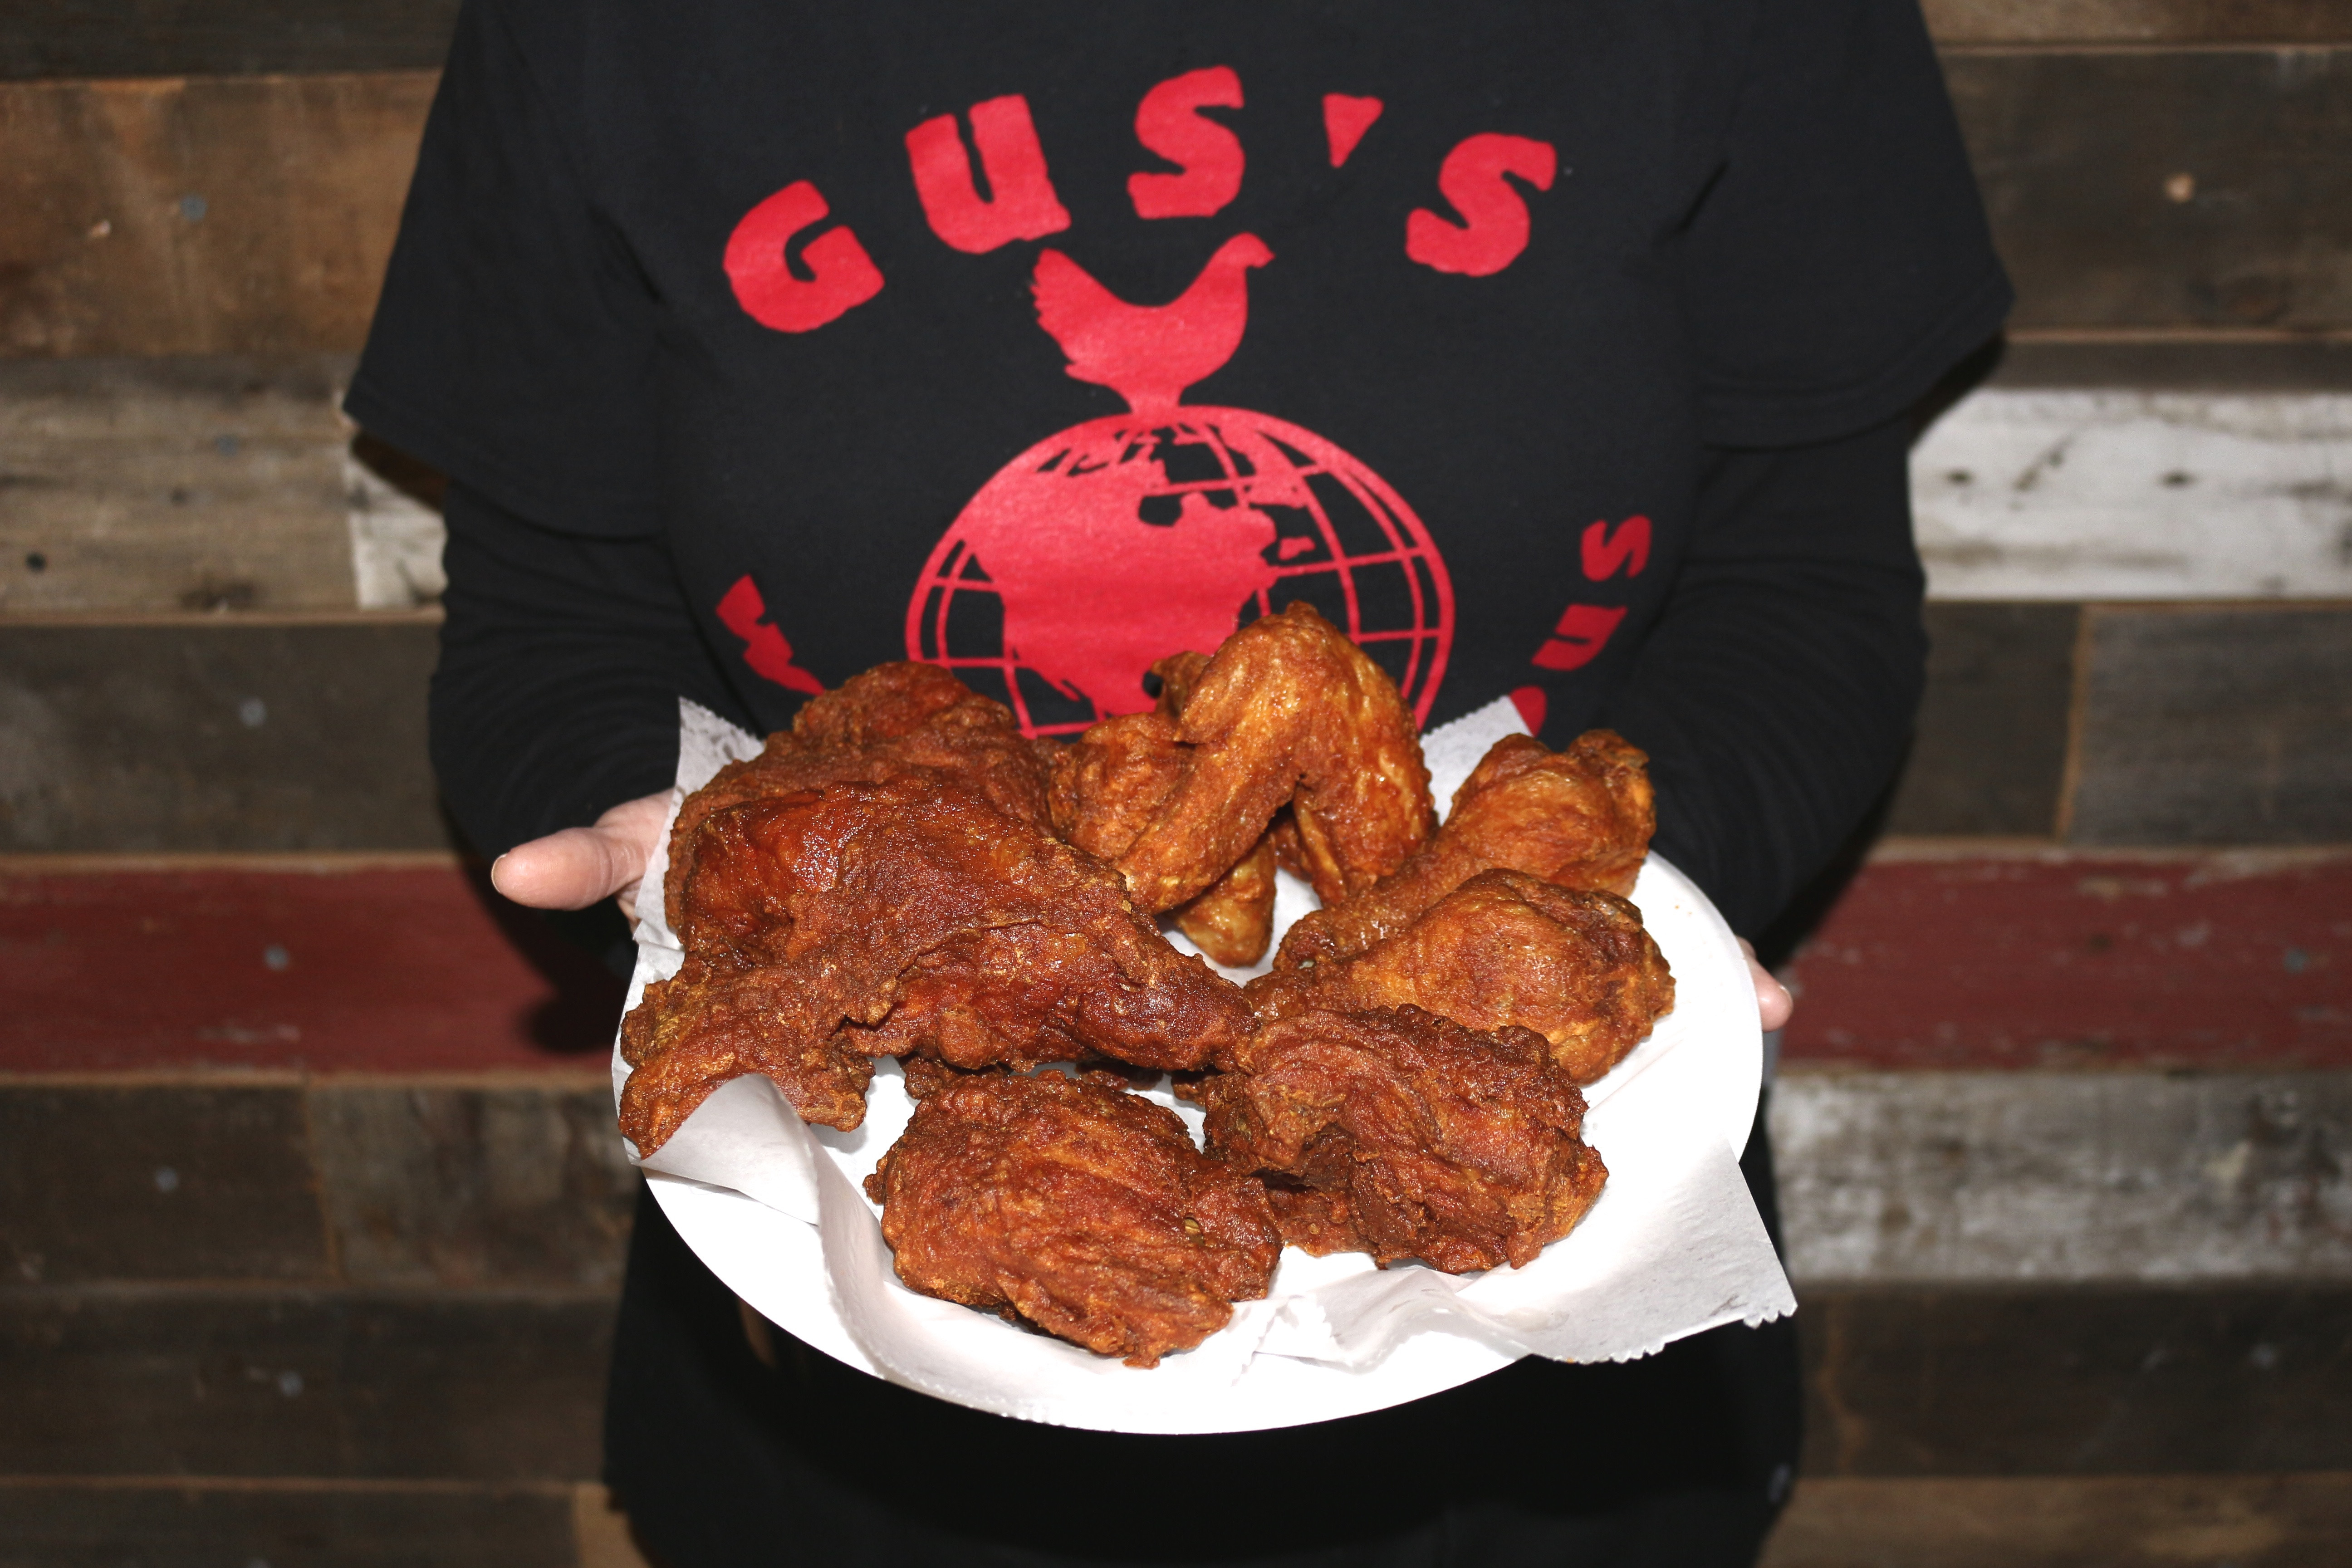 Fried Chicken Chicago  New Year s Eve Day Catering from Gus s Fried Chicken